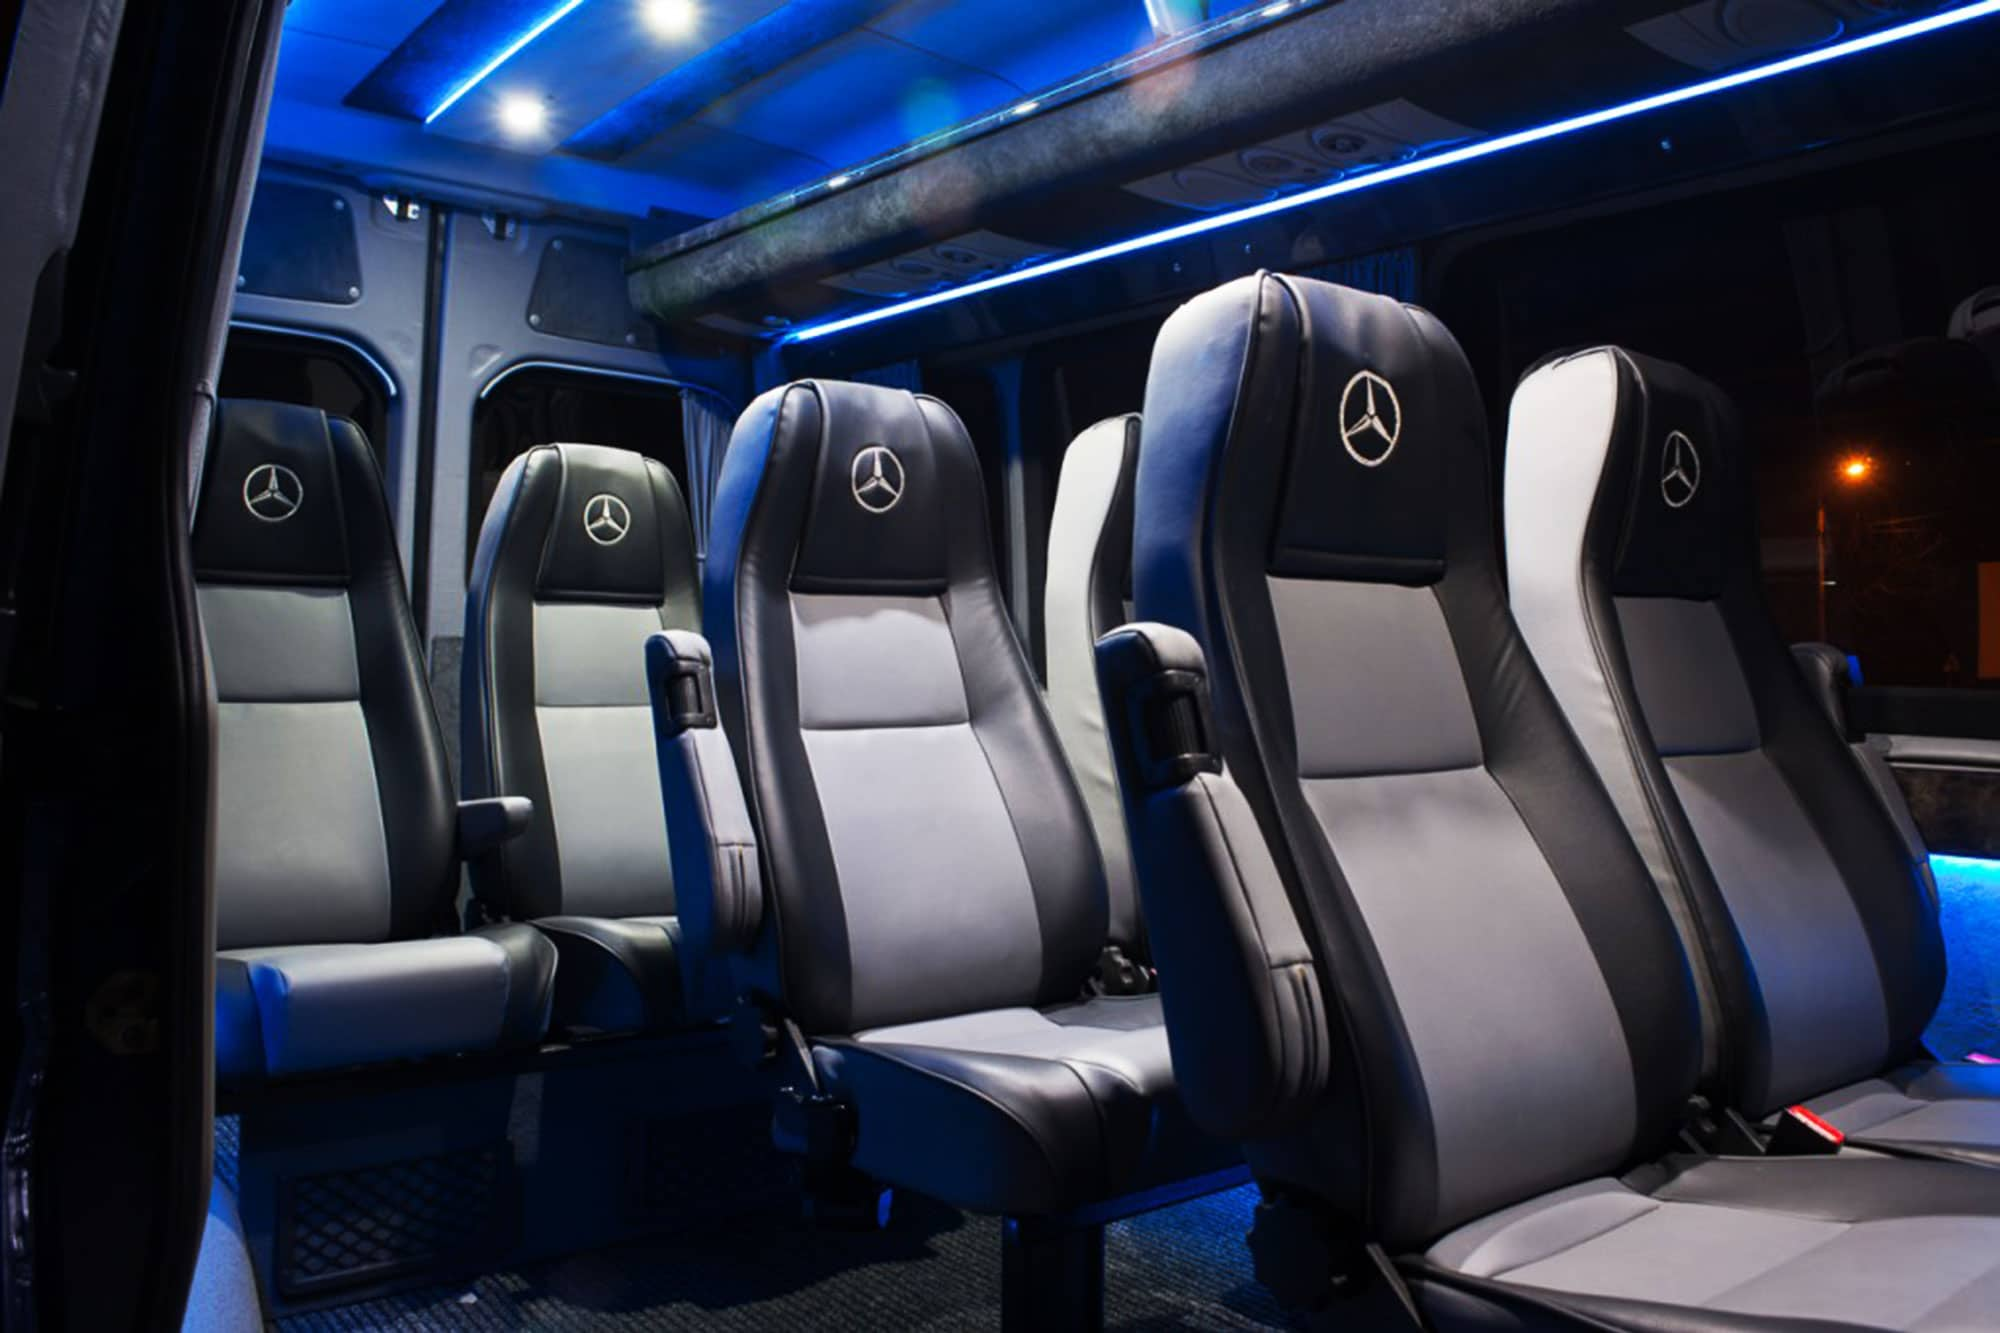 Comfortable seats in a fresh new modlin transfer